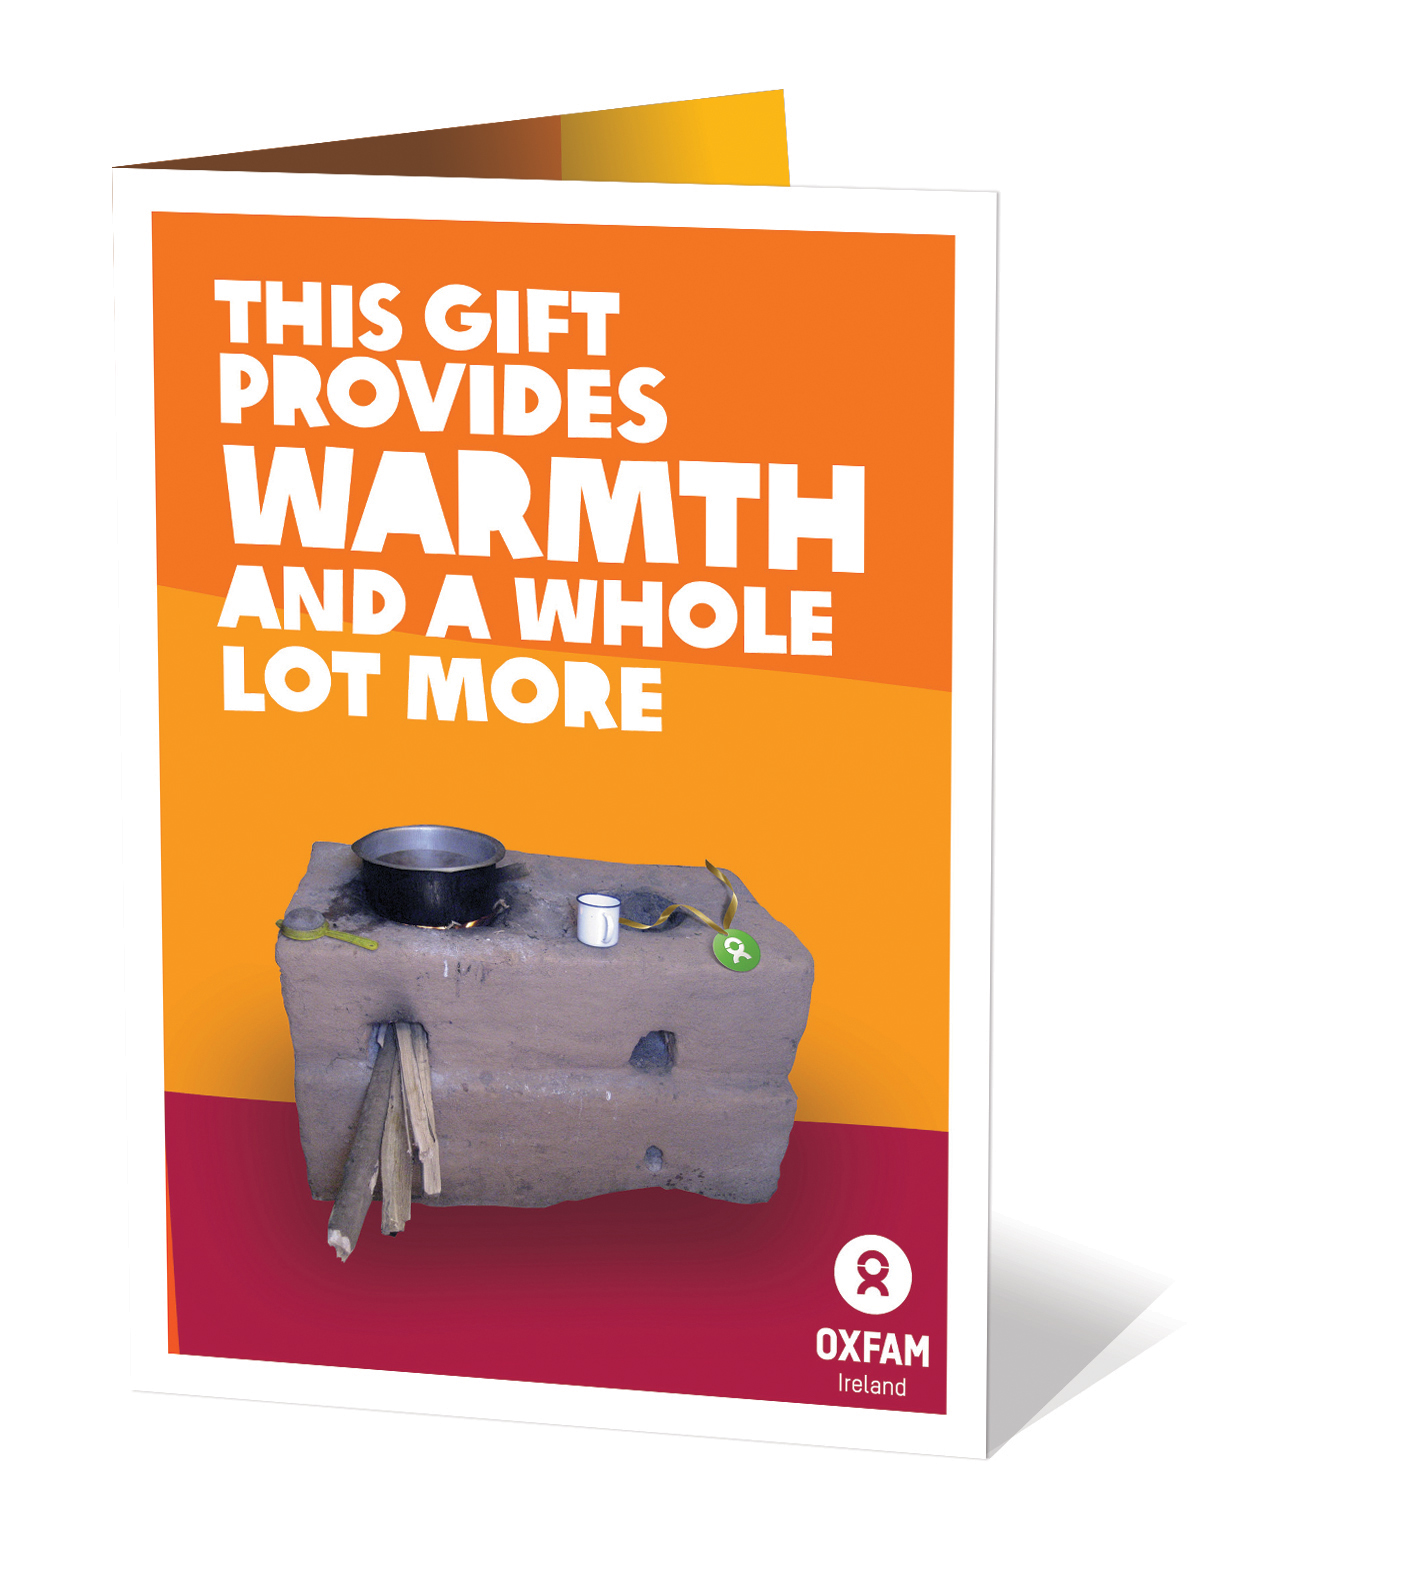 Oxfam Cooking Stove Gift image